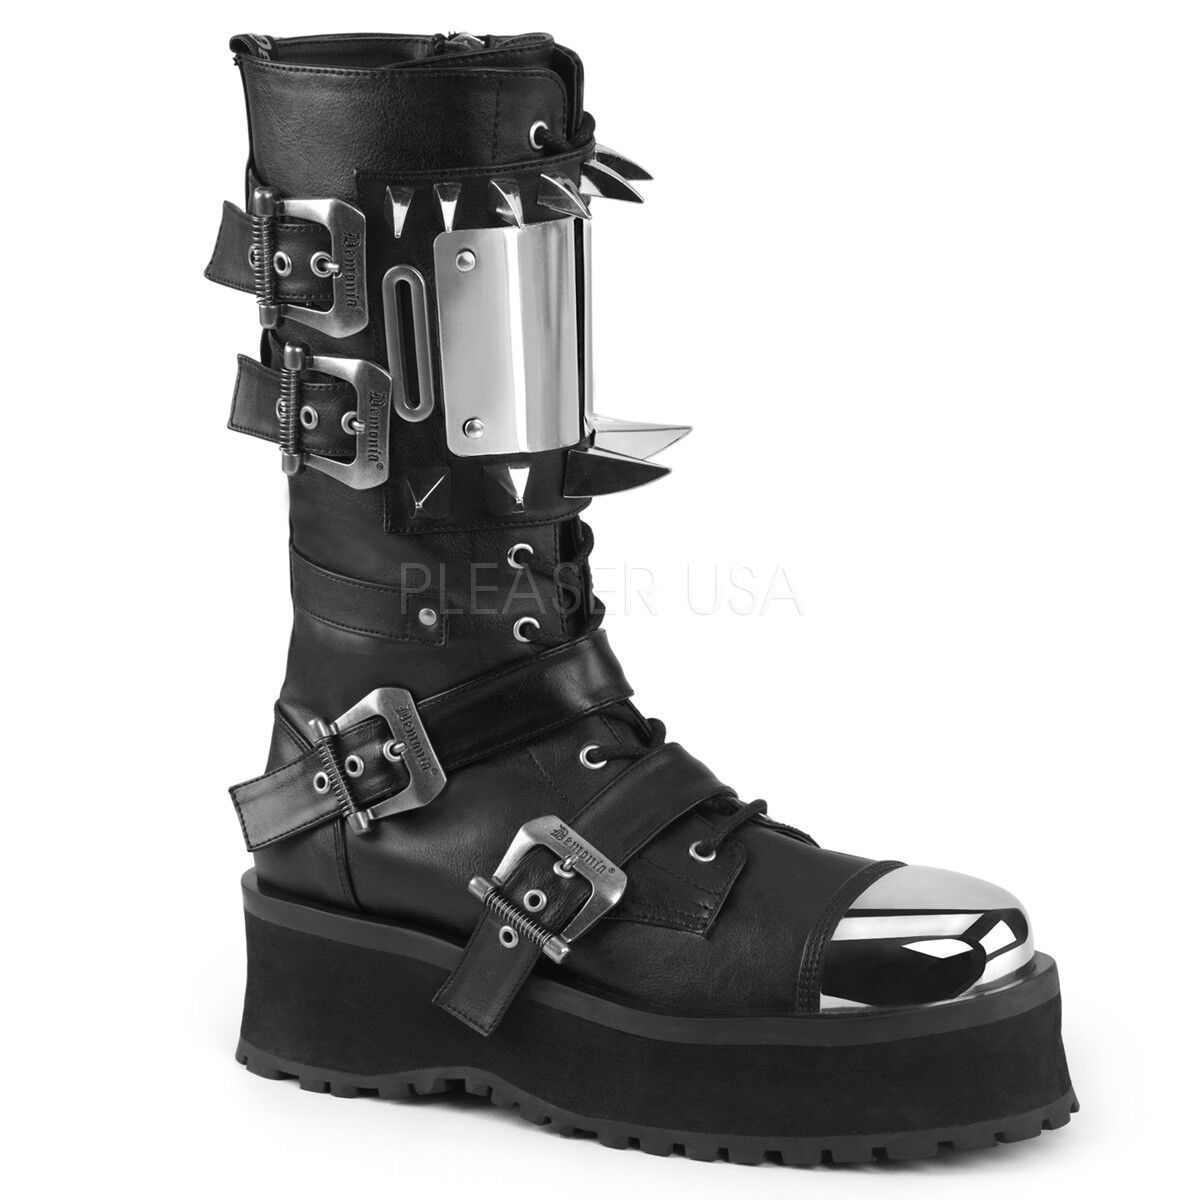 Grave Digger Claw Spike Black Lace Up Zipper Boots Mid Calf Men 4-13 Goth